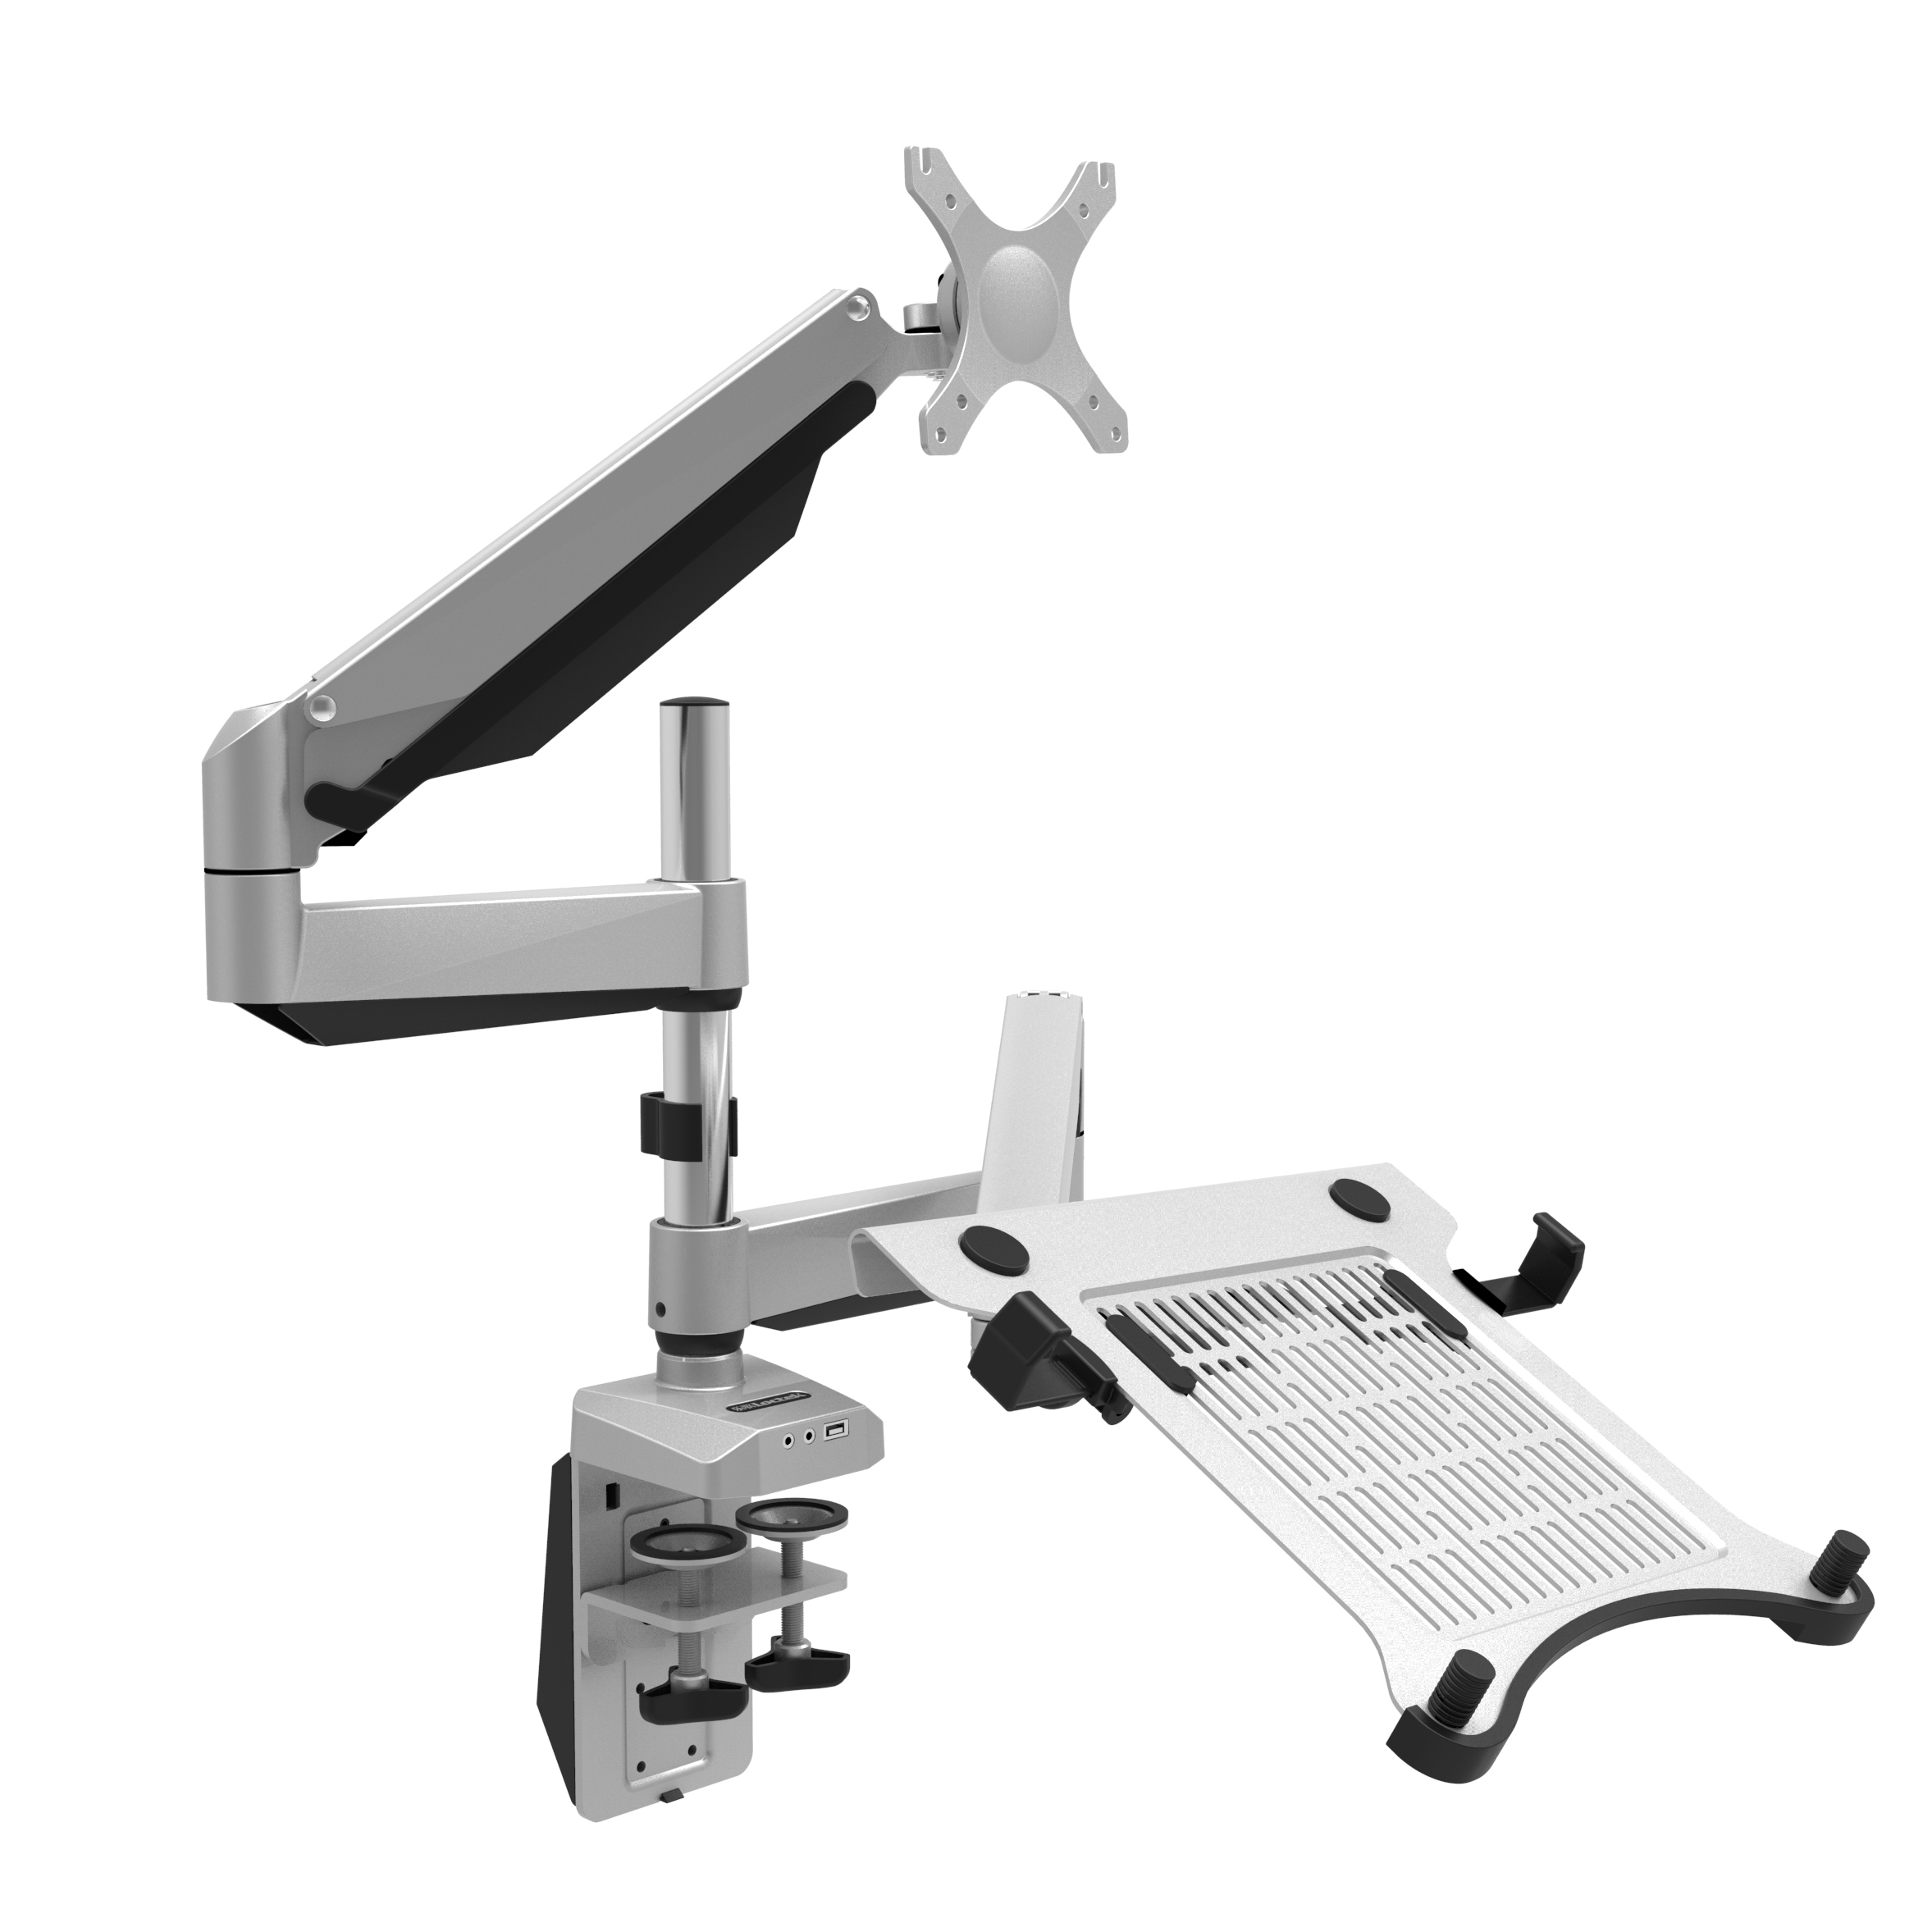 LOCTEK D7DP 2 IN 1 FULL MOTION GAS SPRING DUAL MONITOR ARM DESK MOUNTS